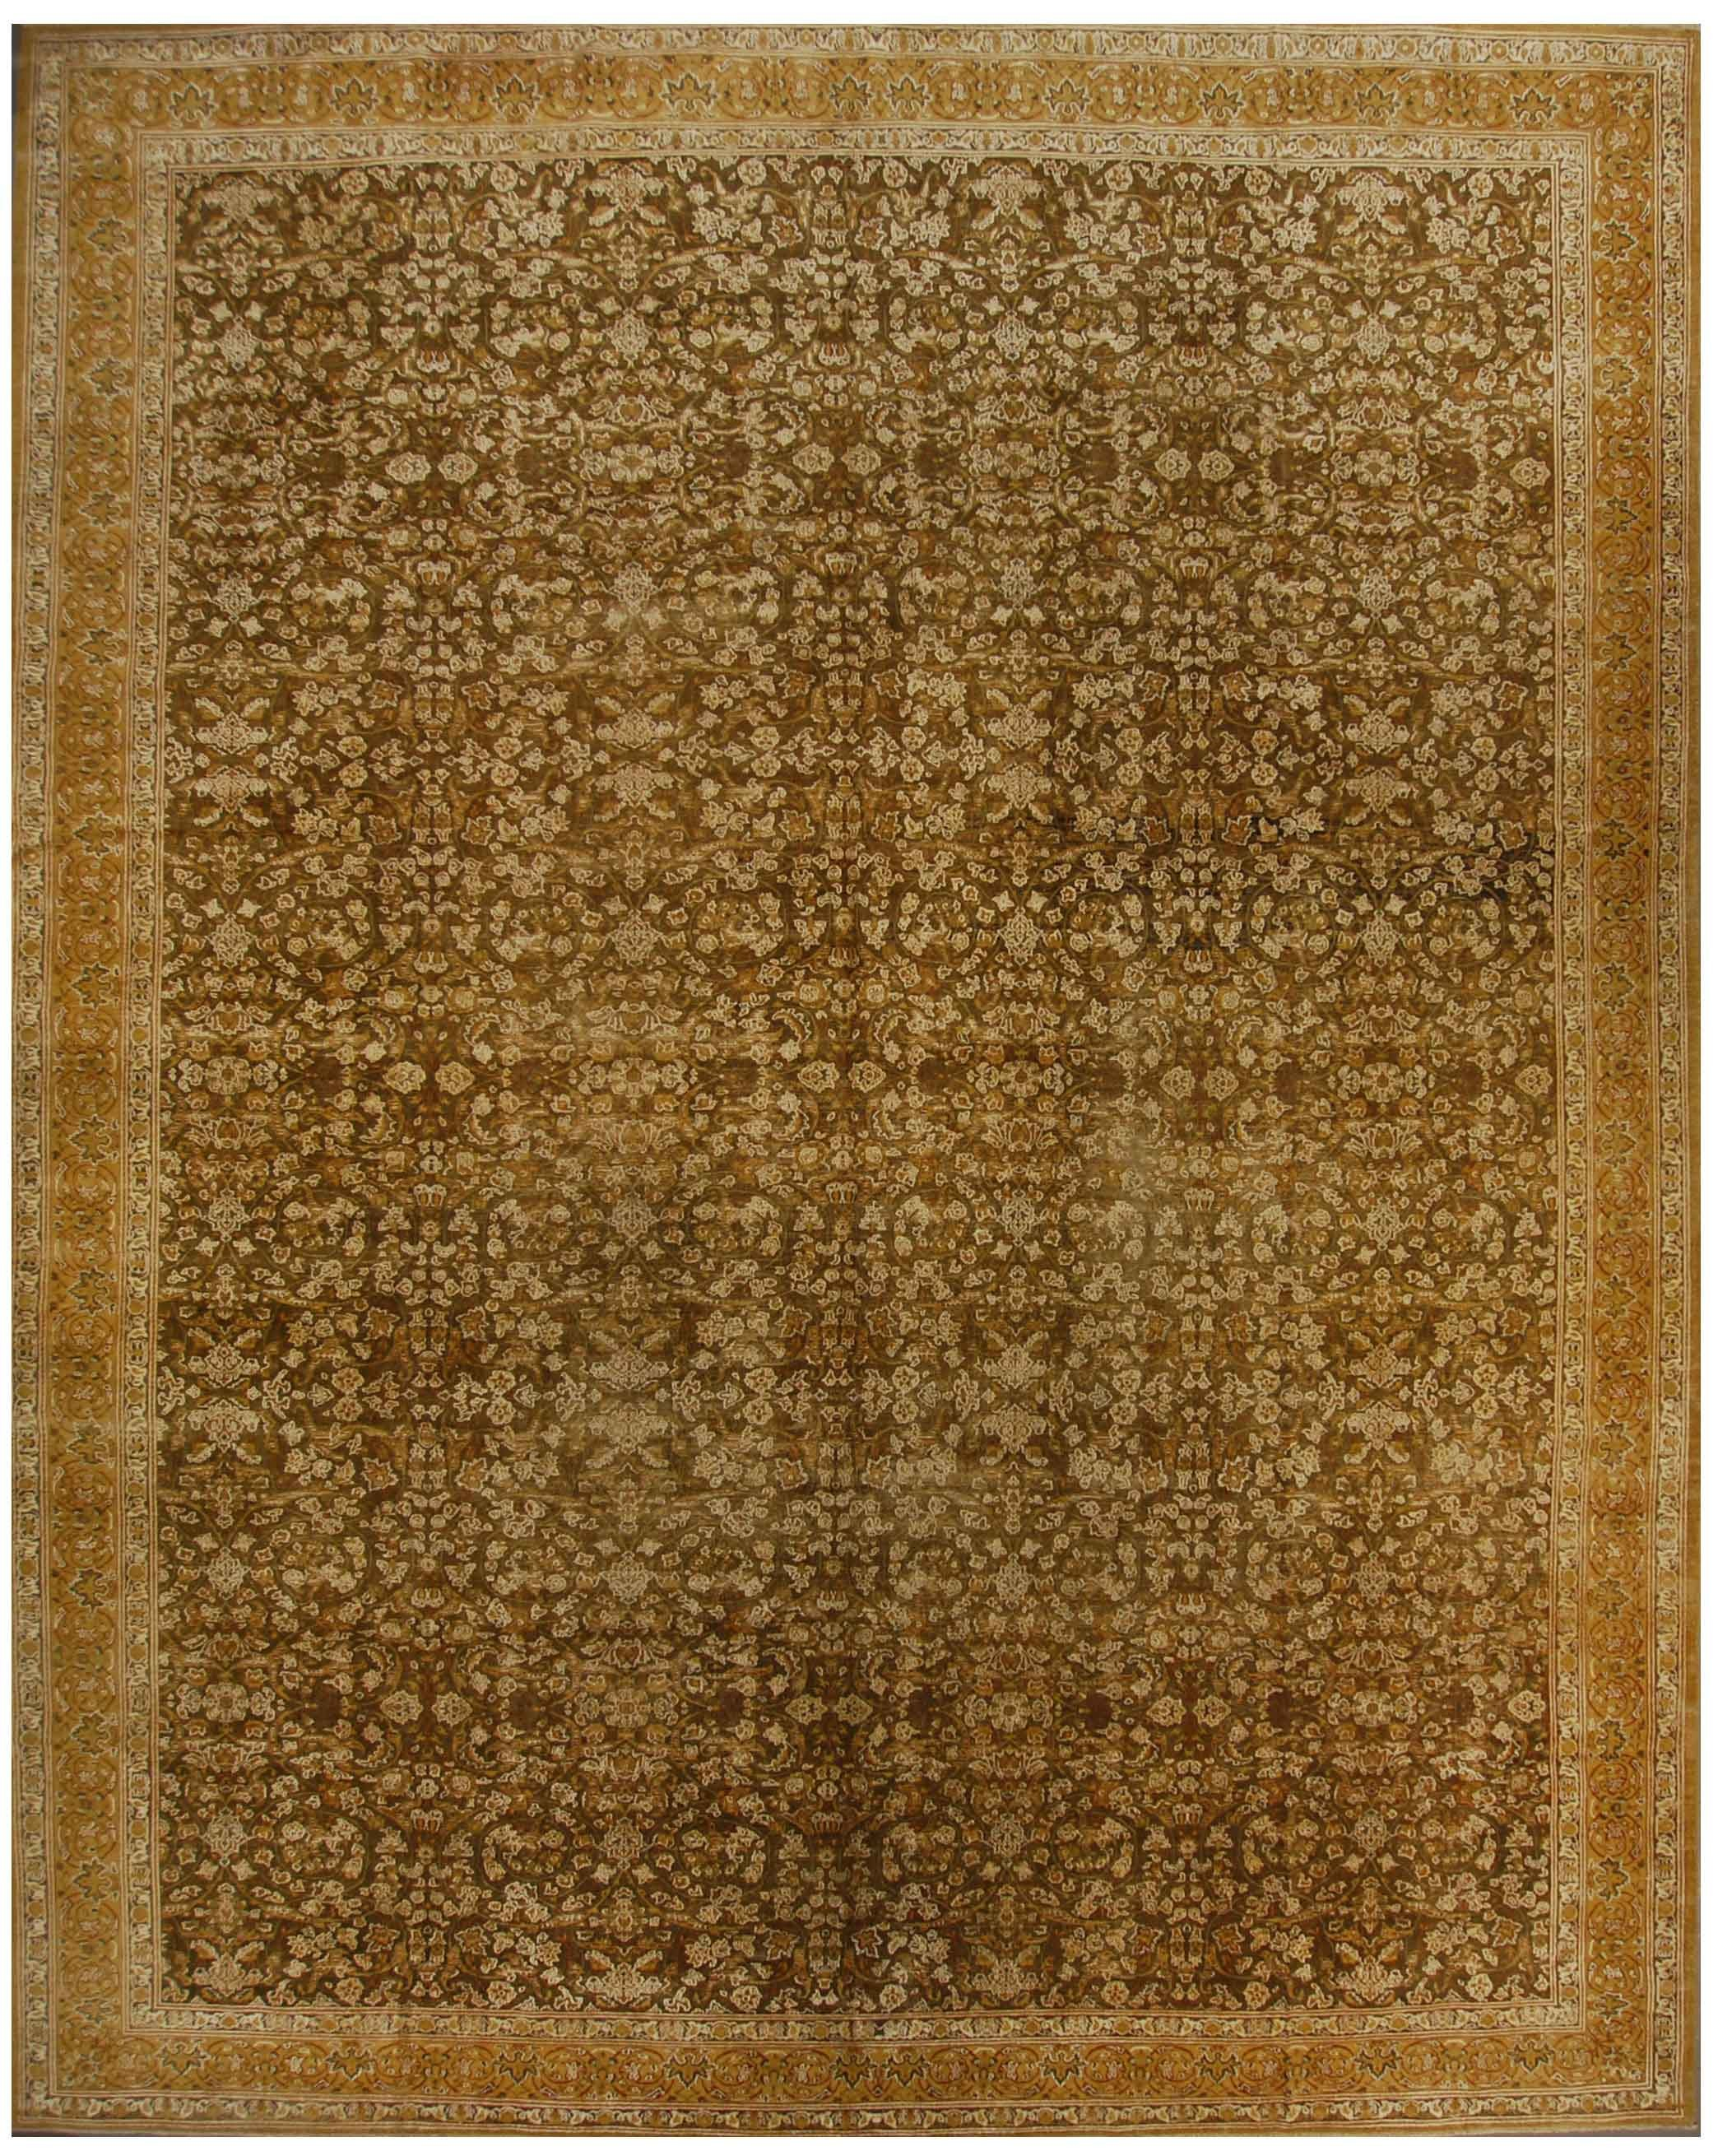 Antique Persian Nain